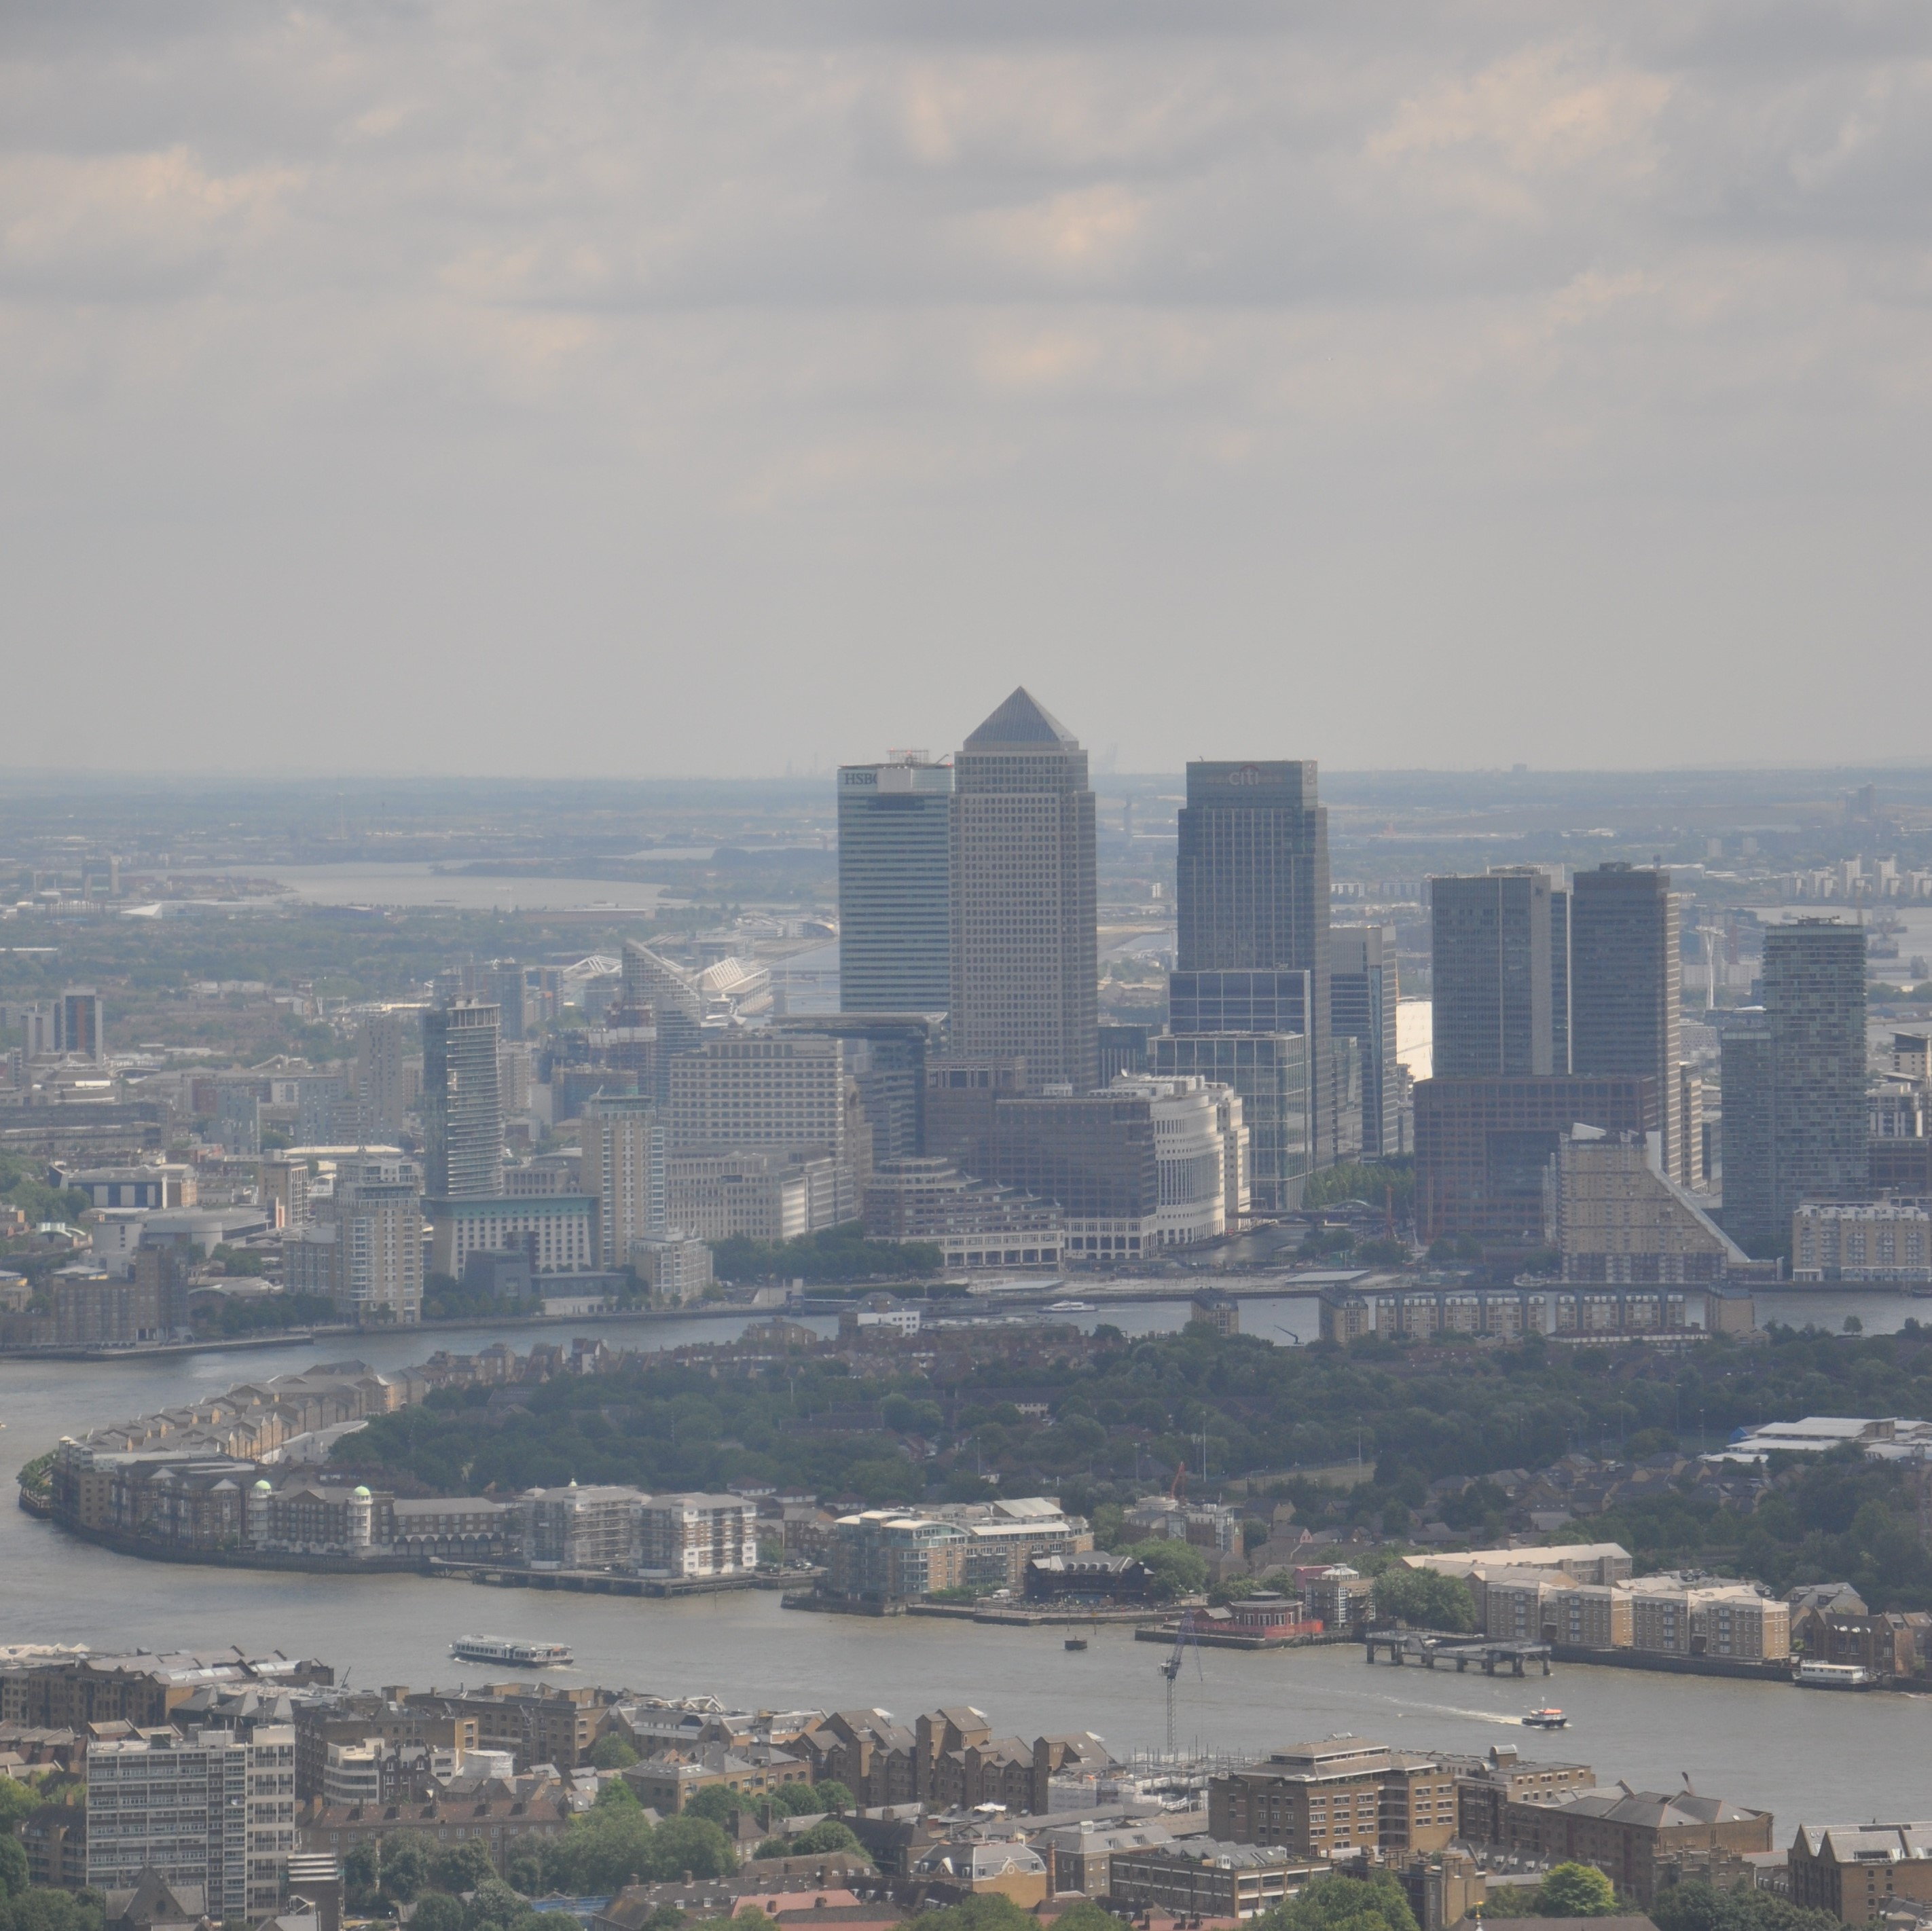 Canary Wharf, as seen in the distance from the top of the Shard in 2014.